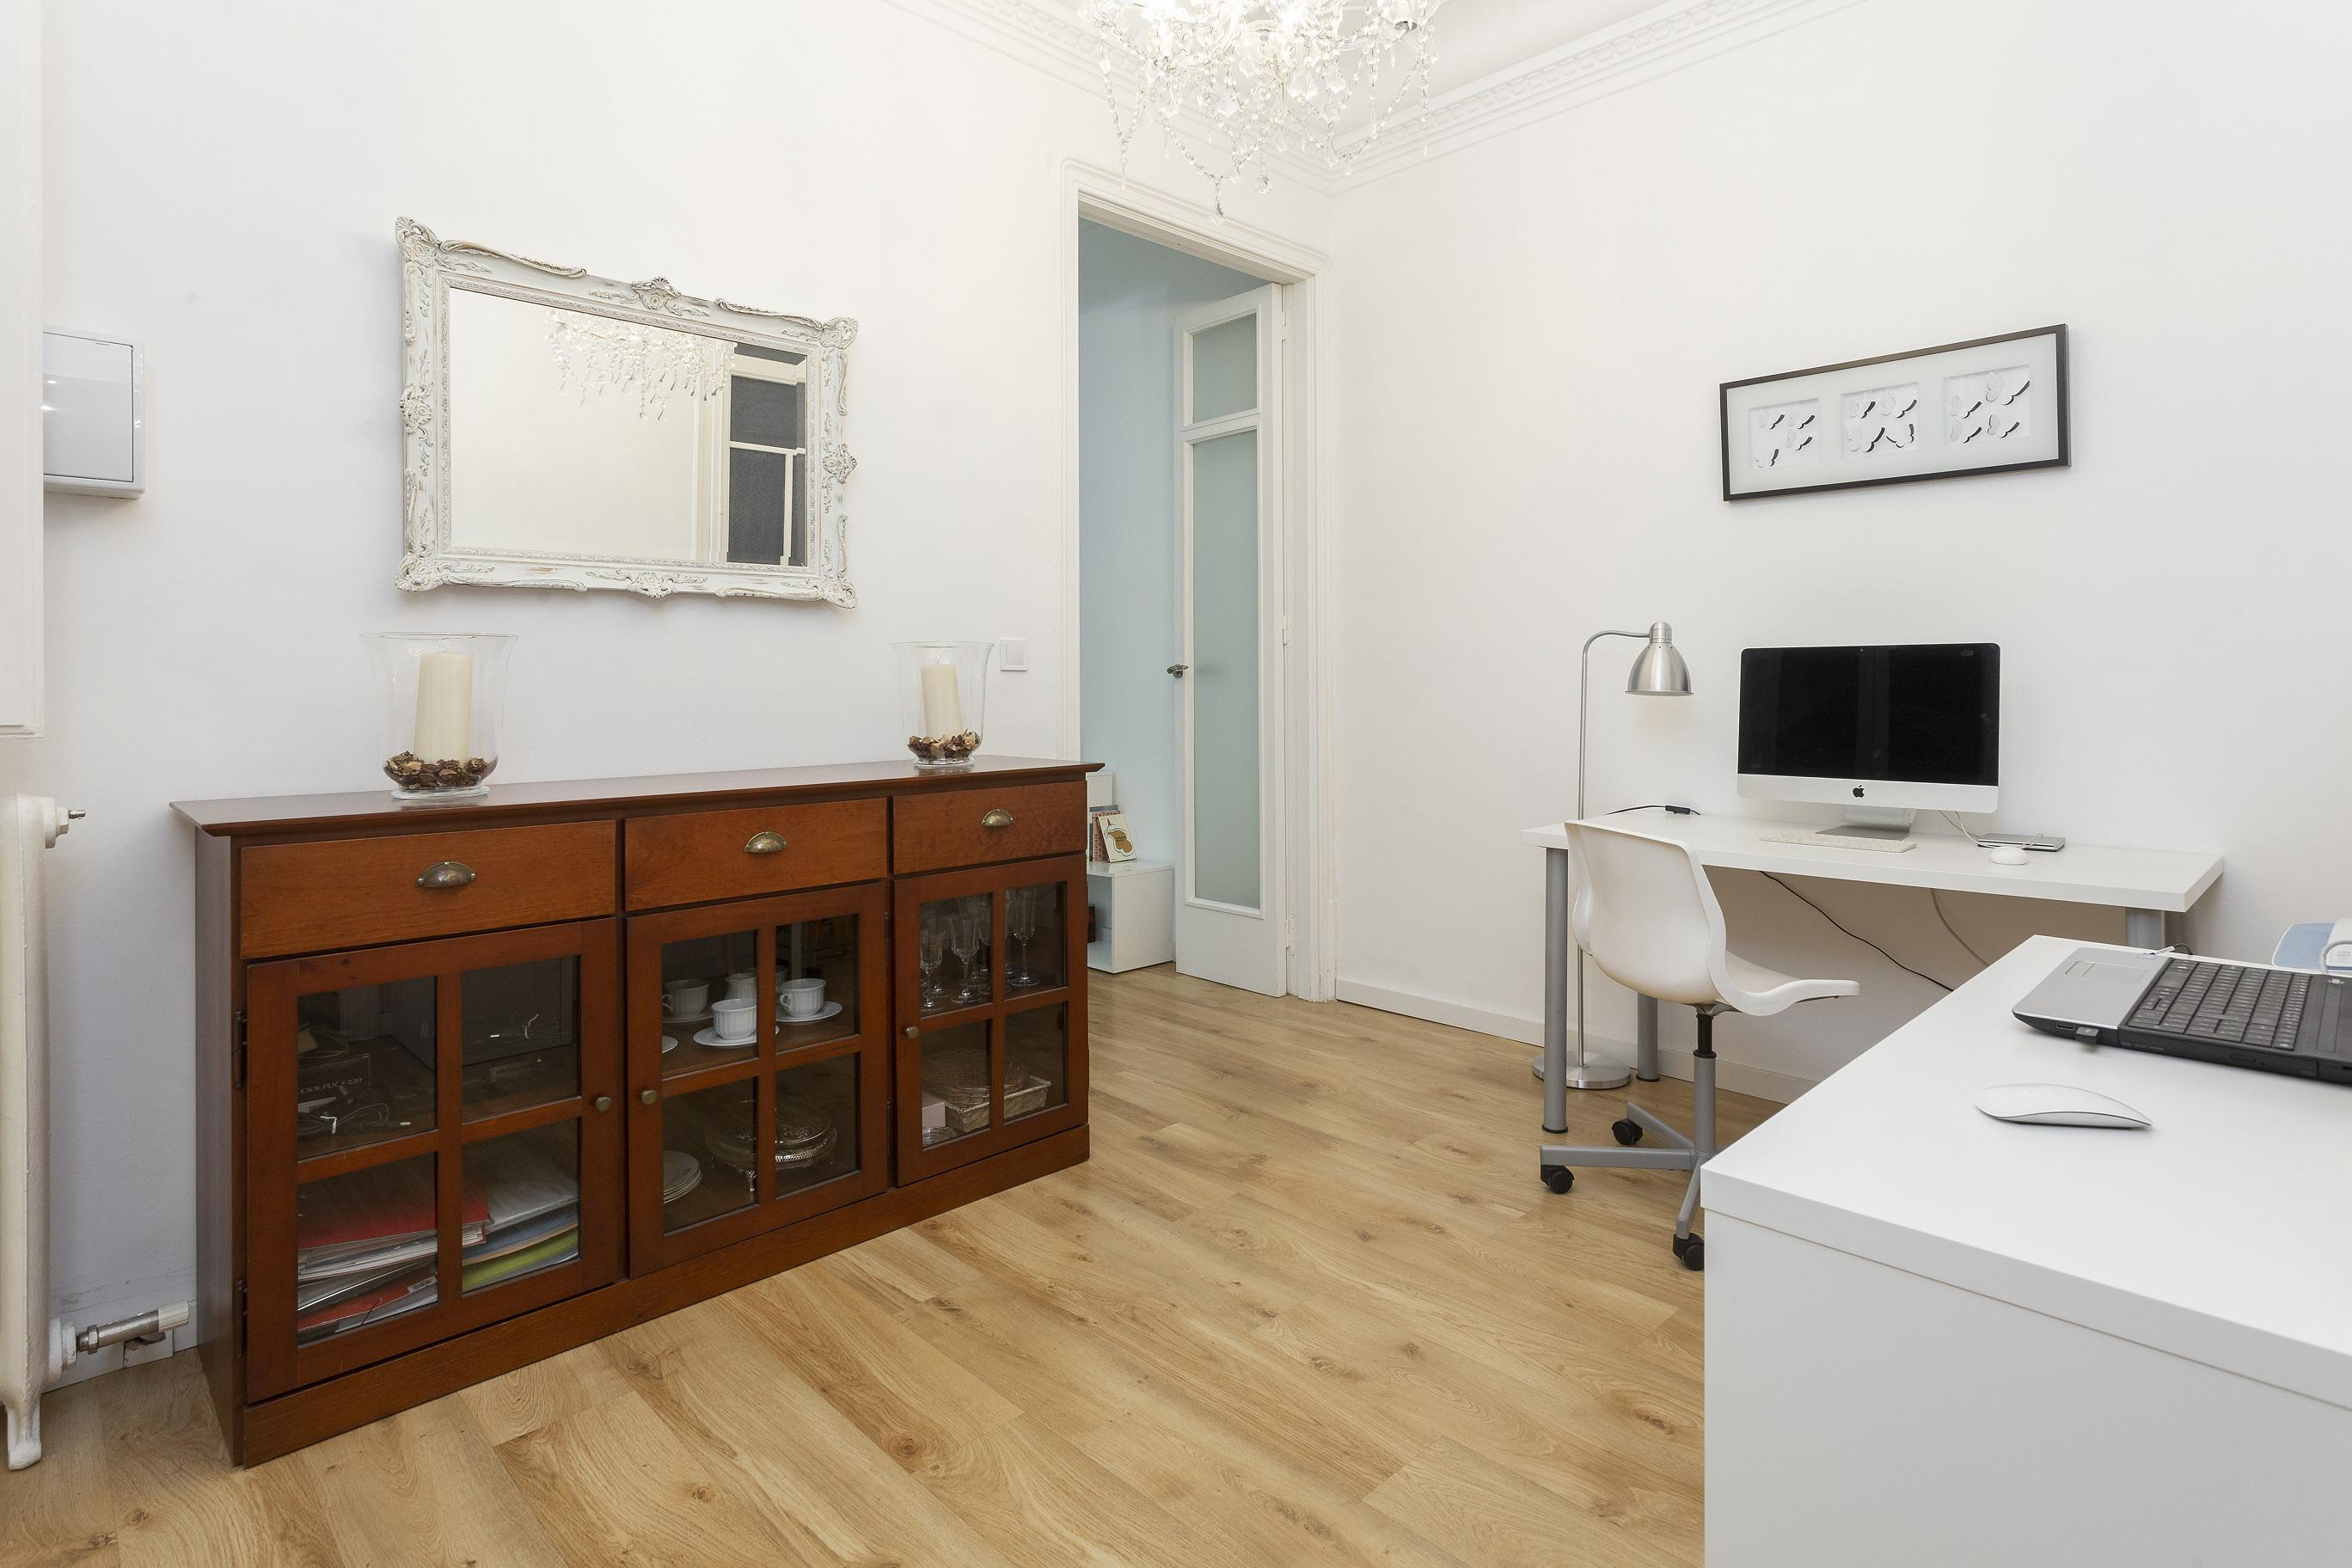 236190 Apartment for sale in Eixample, Old Left Eixample 16